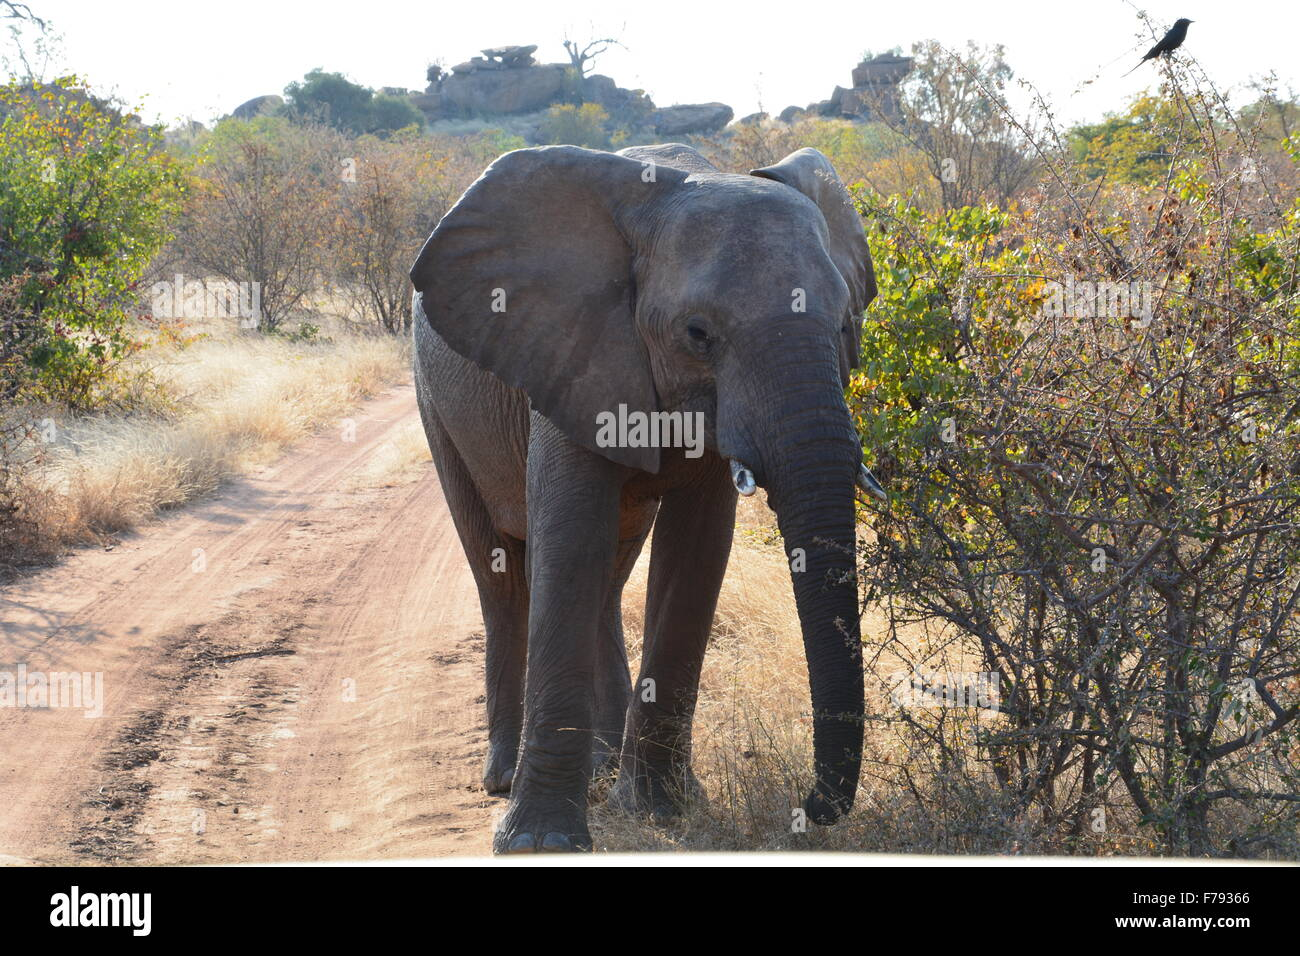 Juvenile elephant with broken tusks named Captain blocking the road in Tuli Botswana, Africa - Stock Image